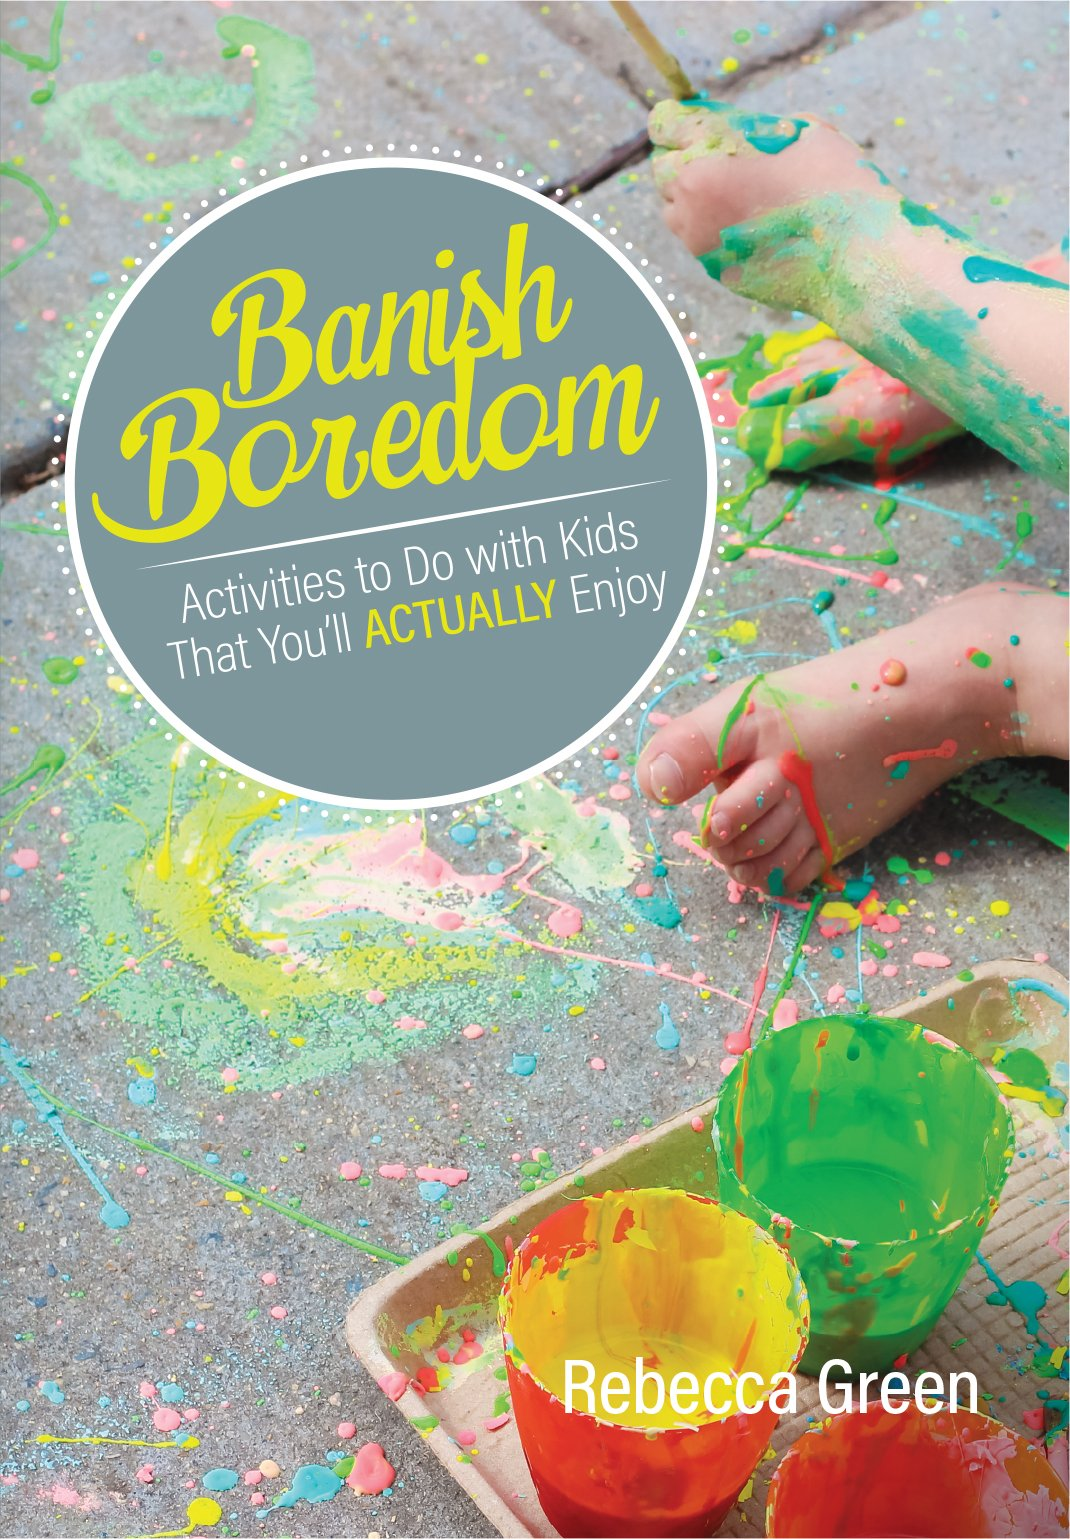 Banish Boredom: Activities to Do with Kids That You'll Actually Enjoy pdf